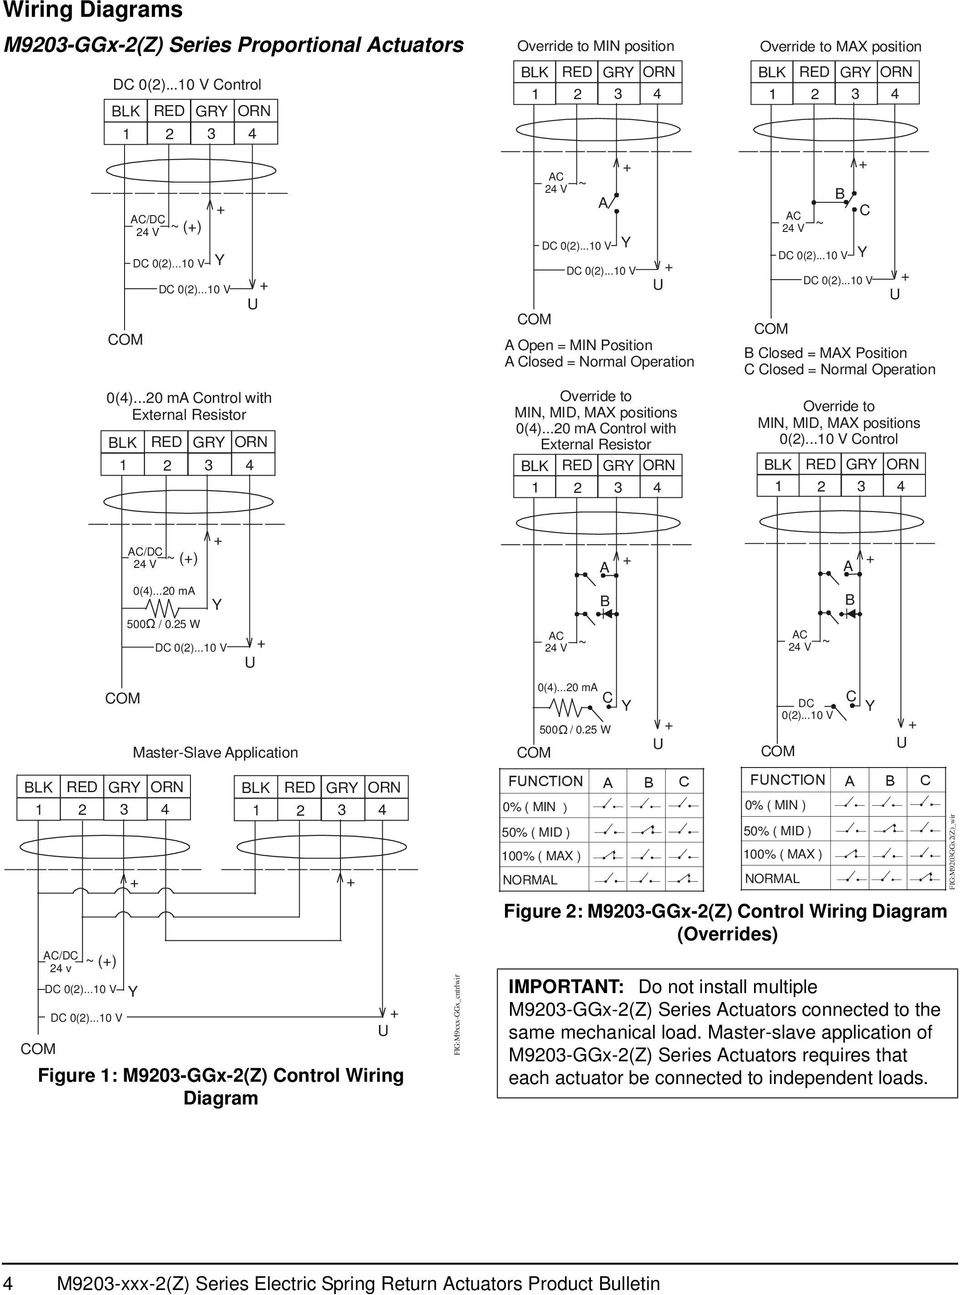 warn winch 8274 wiring diagram warn 8274 wiring diagram 2 herm thewiring diagram m9220 actuator johnson controls further ac fan speed warn winch 8274 wiring diagram warn 8274 wiring diagram 2 herm the